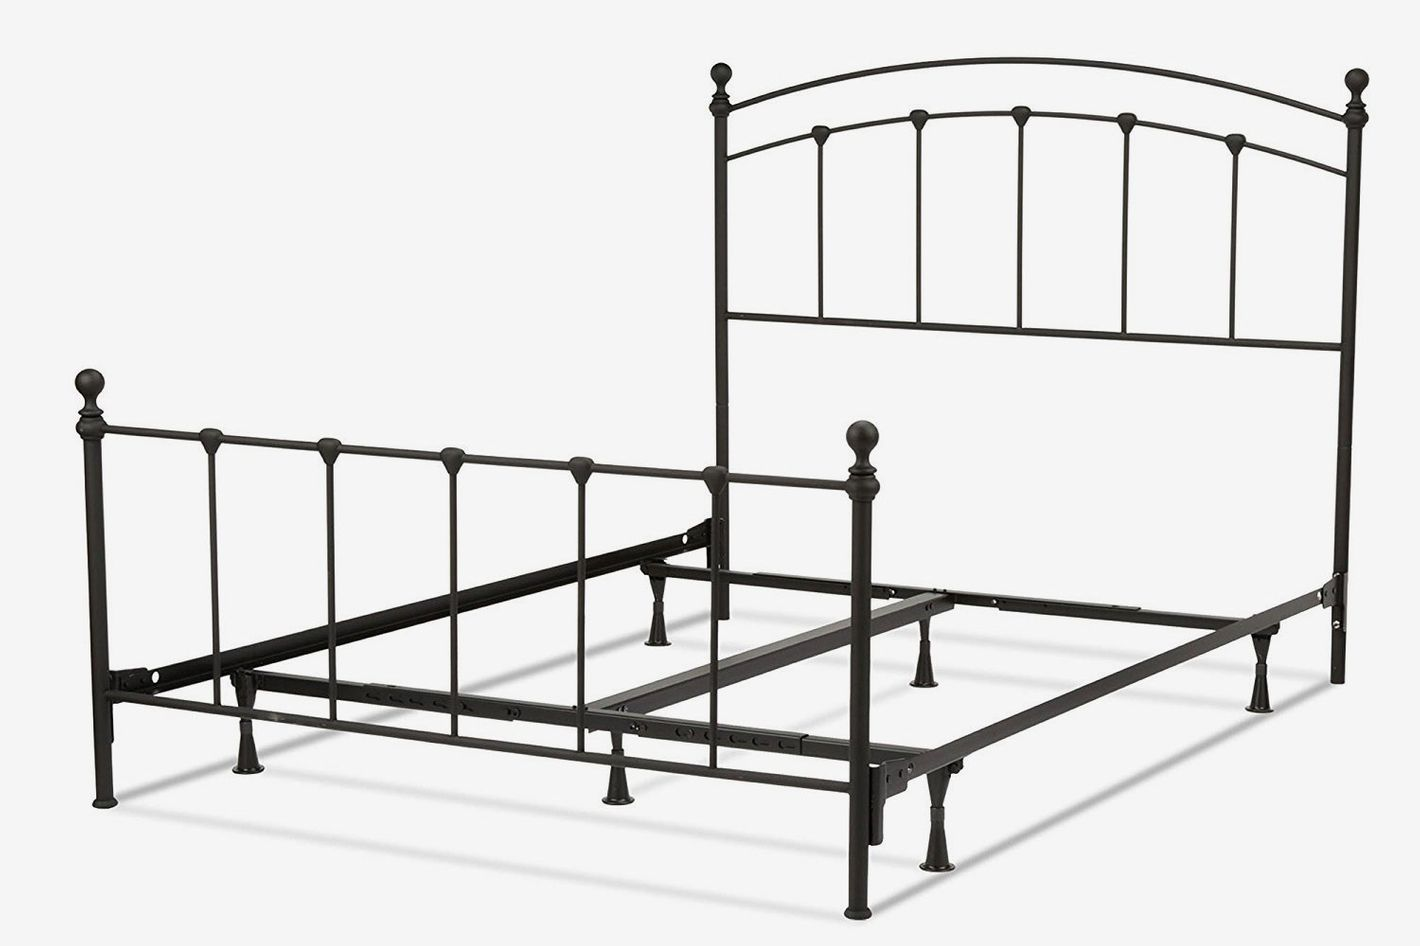 Fashion Bed Group Sanford Bed With Metal Panels and Round Finial Posts — Queen